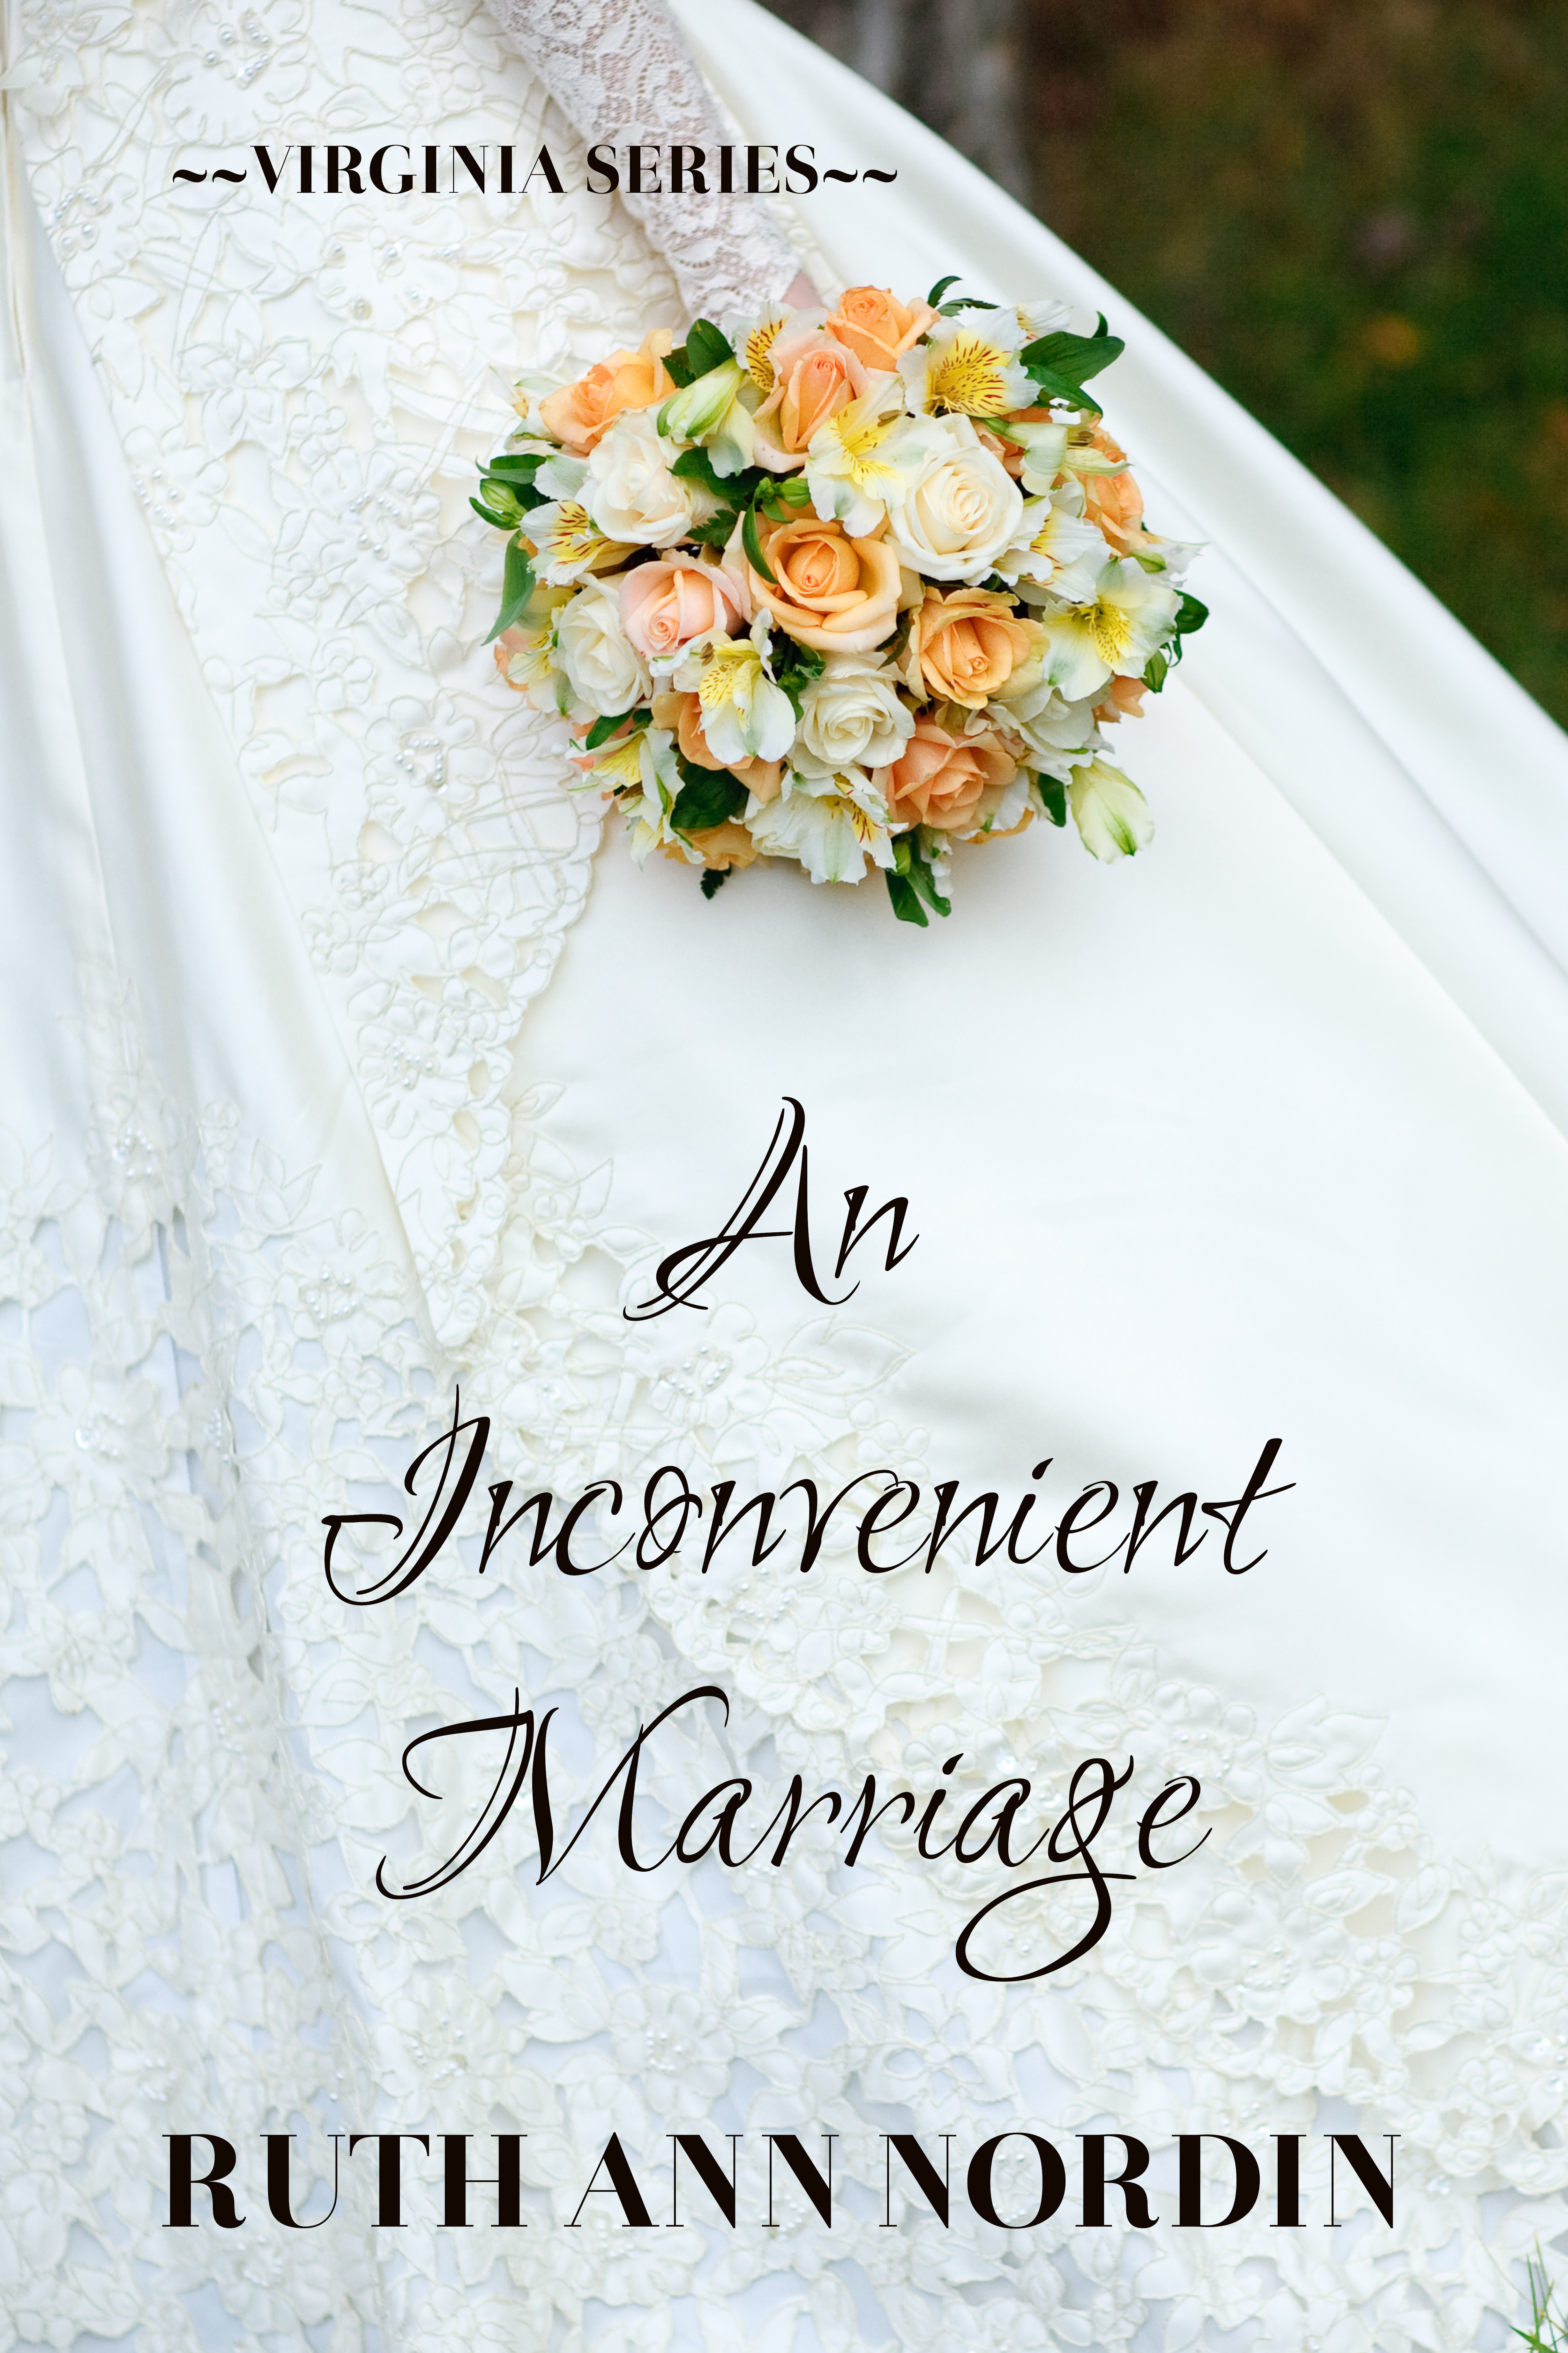 an inconvenient marriage ebook cover 3